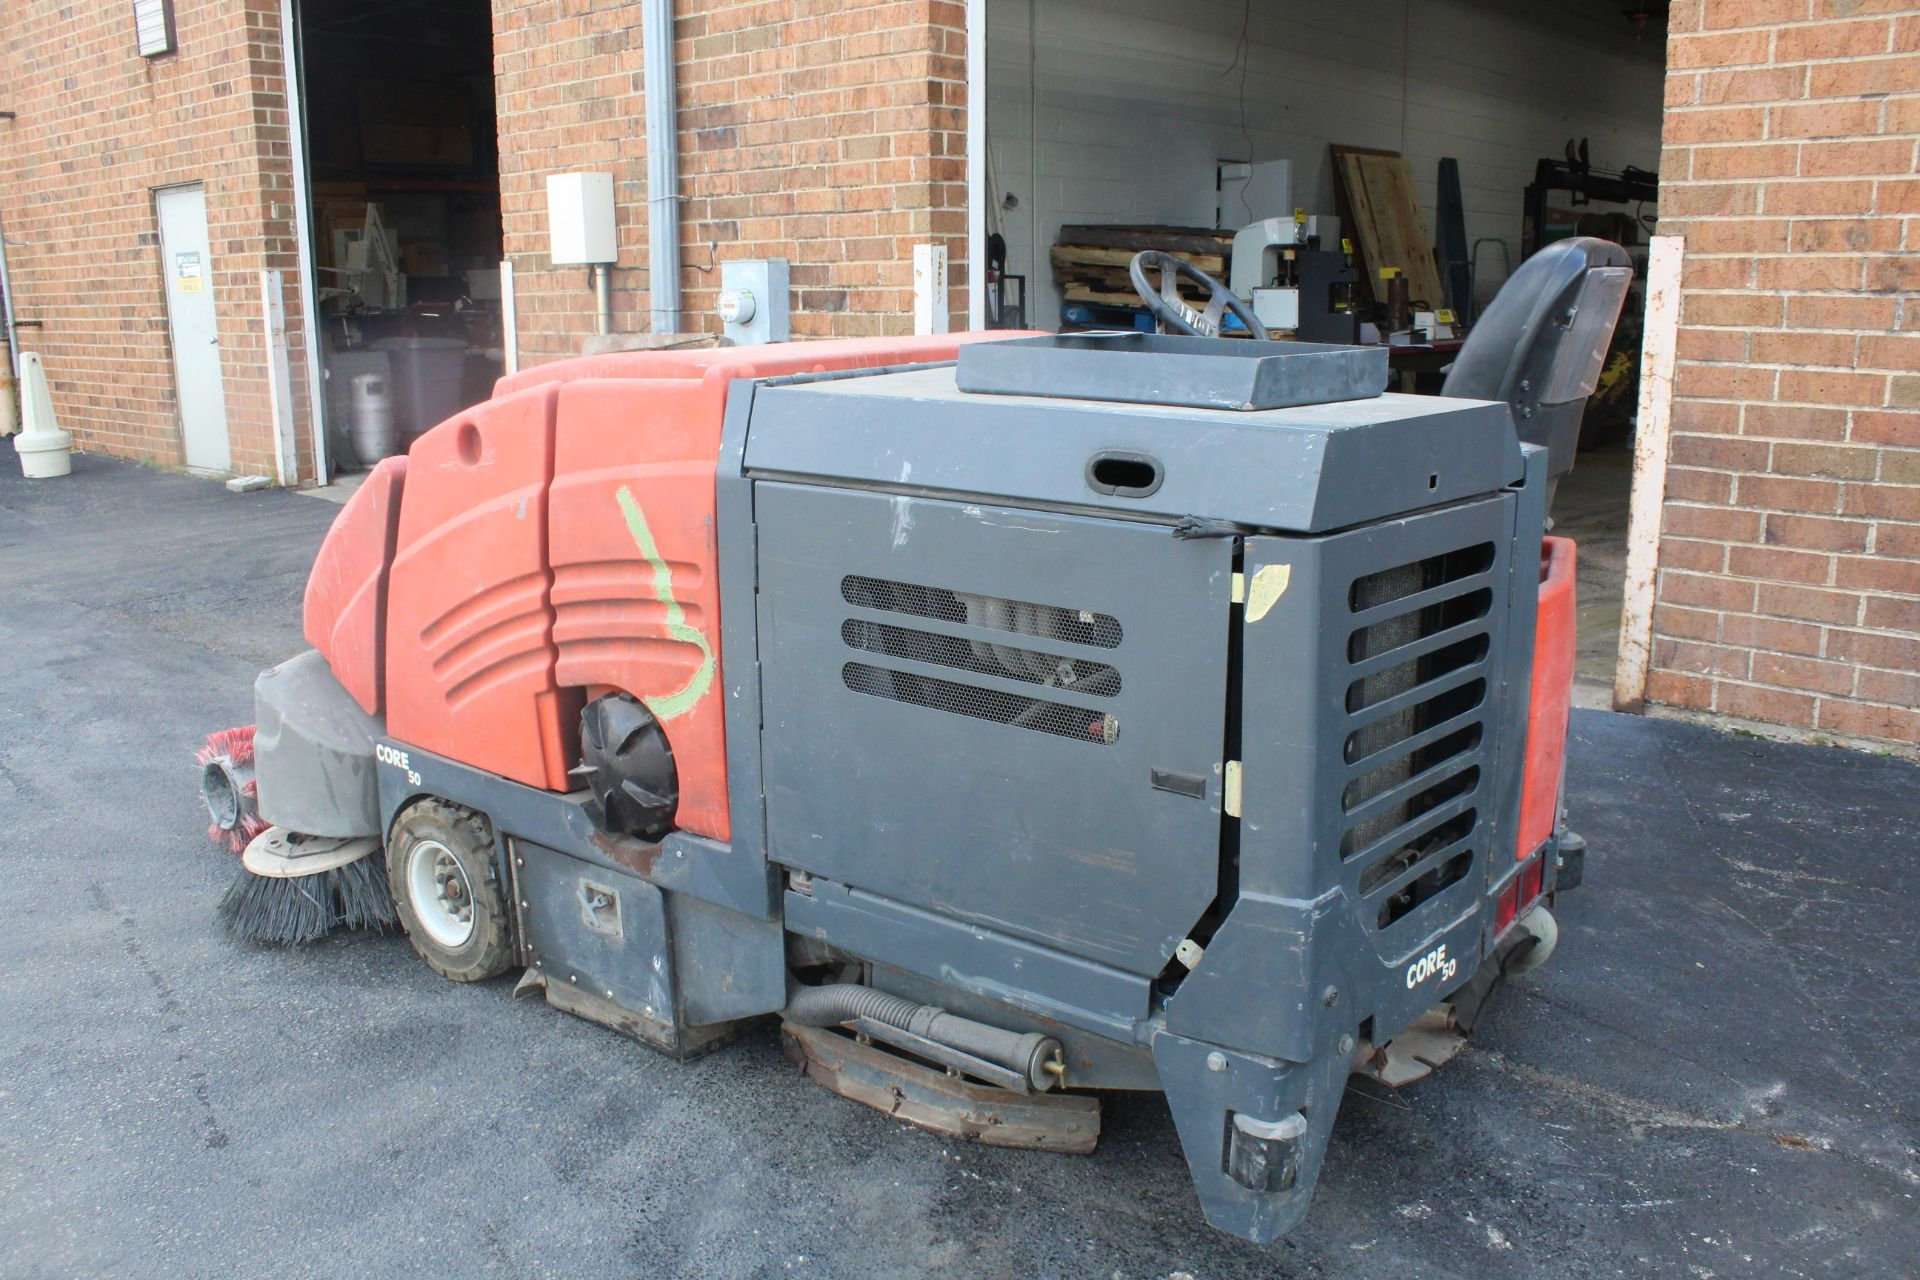 POWERBOSS CORE 50 RIDE ON SWEEPER SCRUBBER - Image 3 of 6